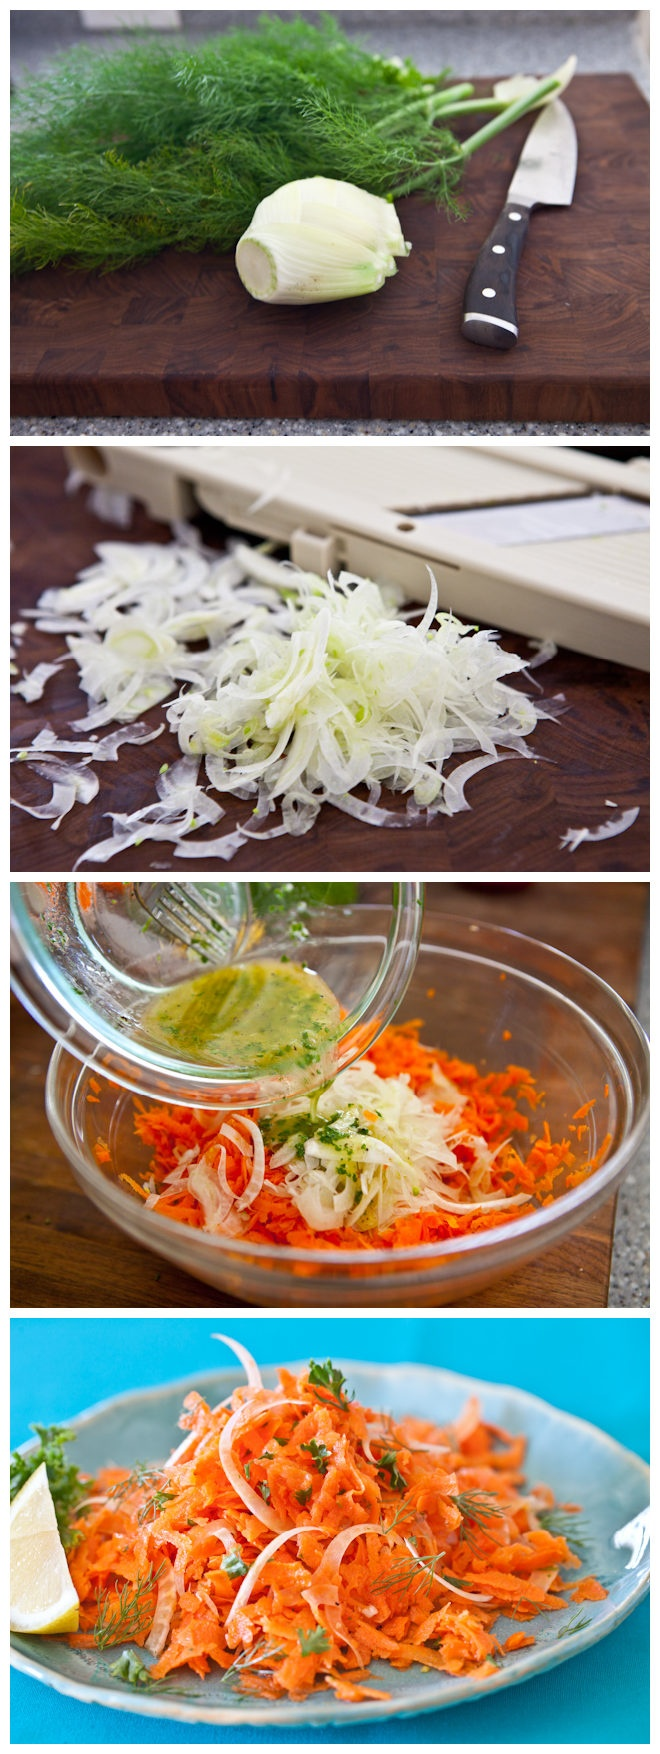 French Carrot Fennel Salad | Haute Foodie! | Pinterest